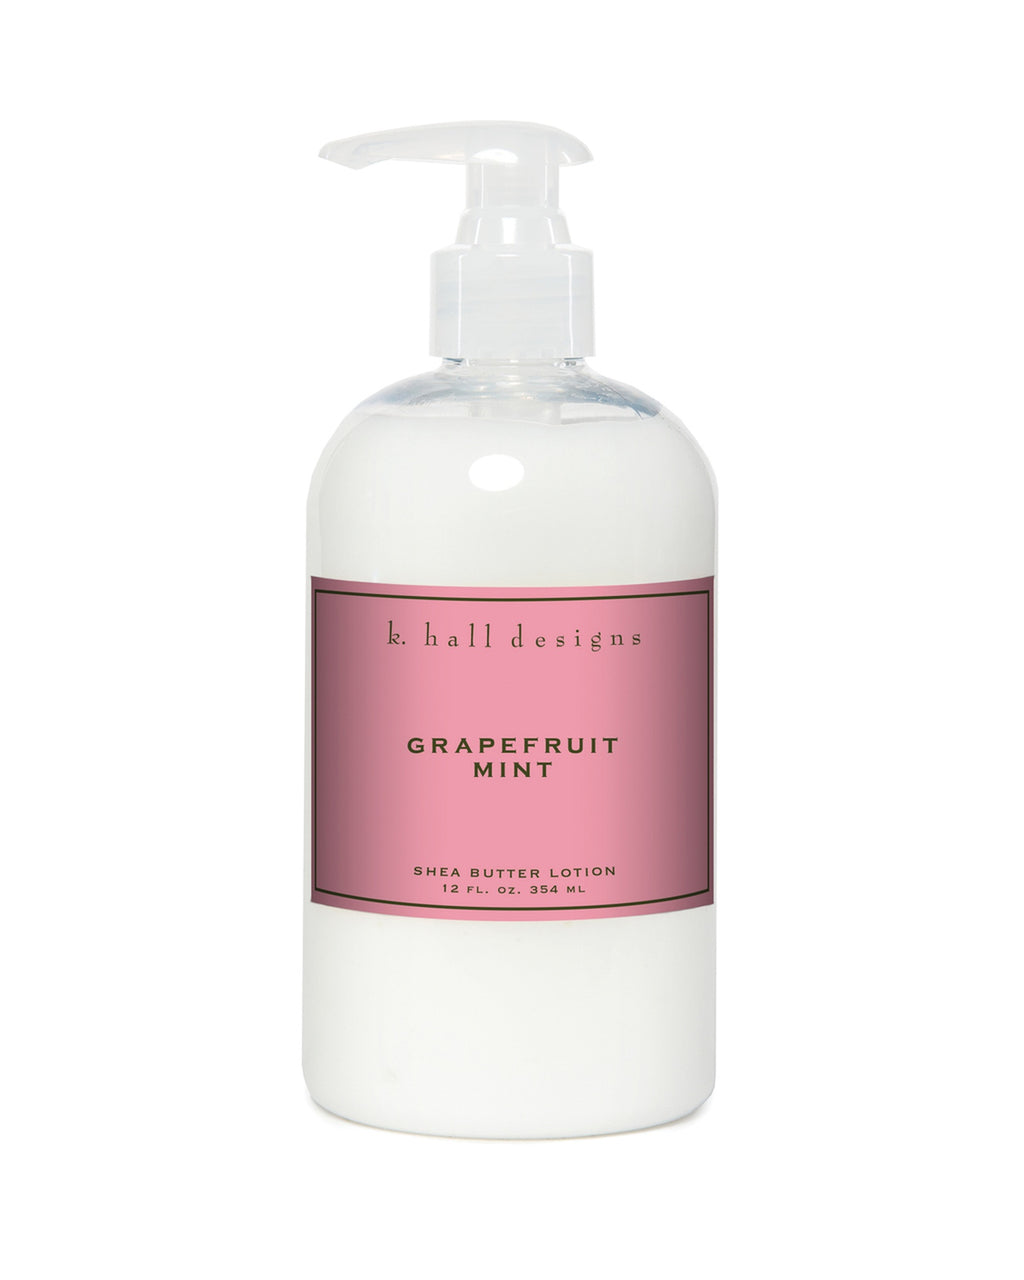 Grapefruit Mint Shea Butter Lotion 12oz